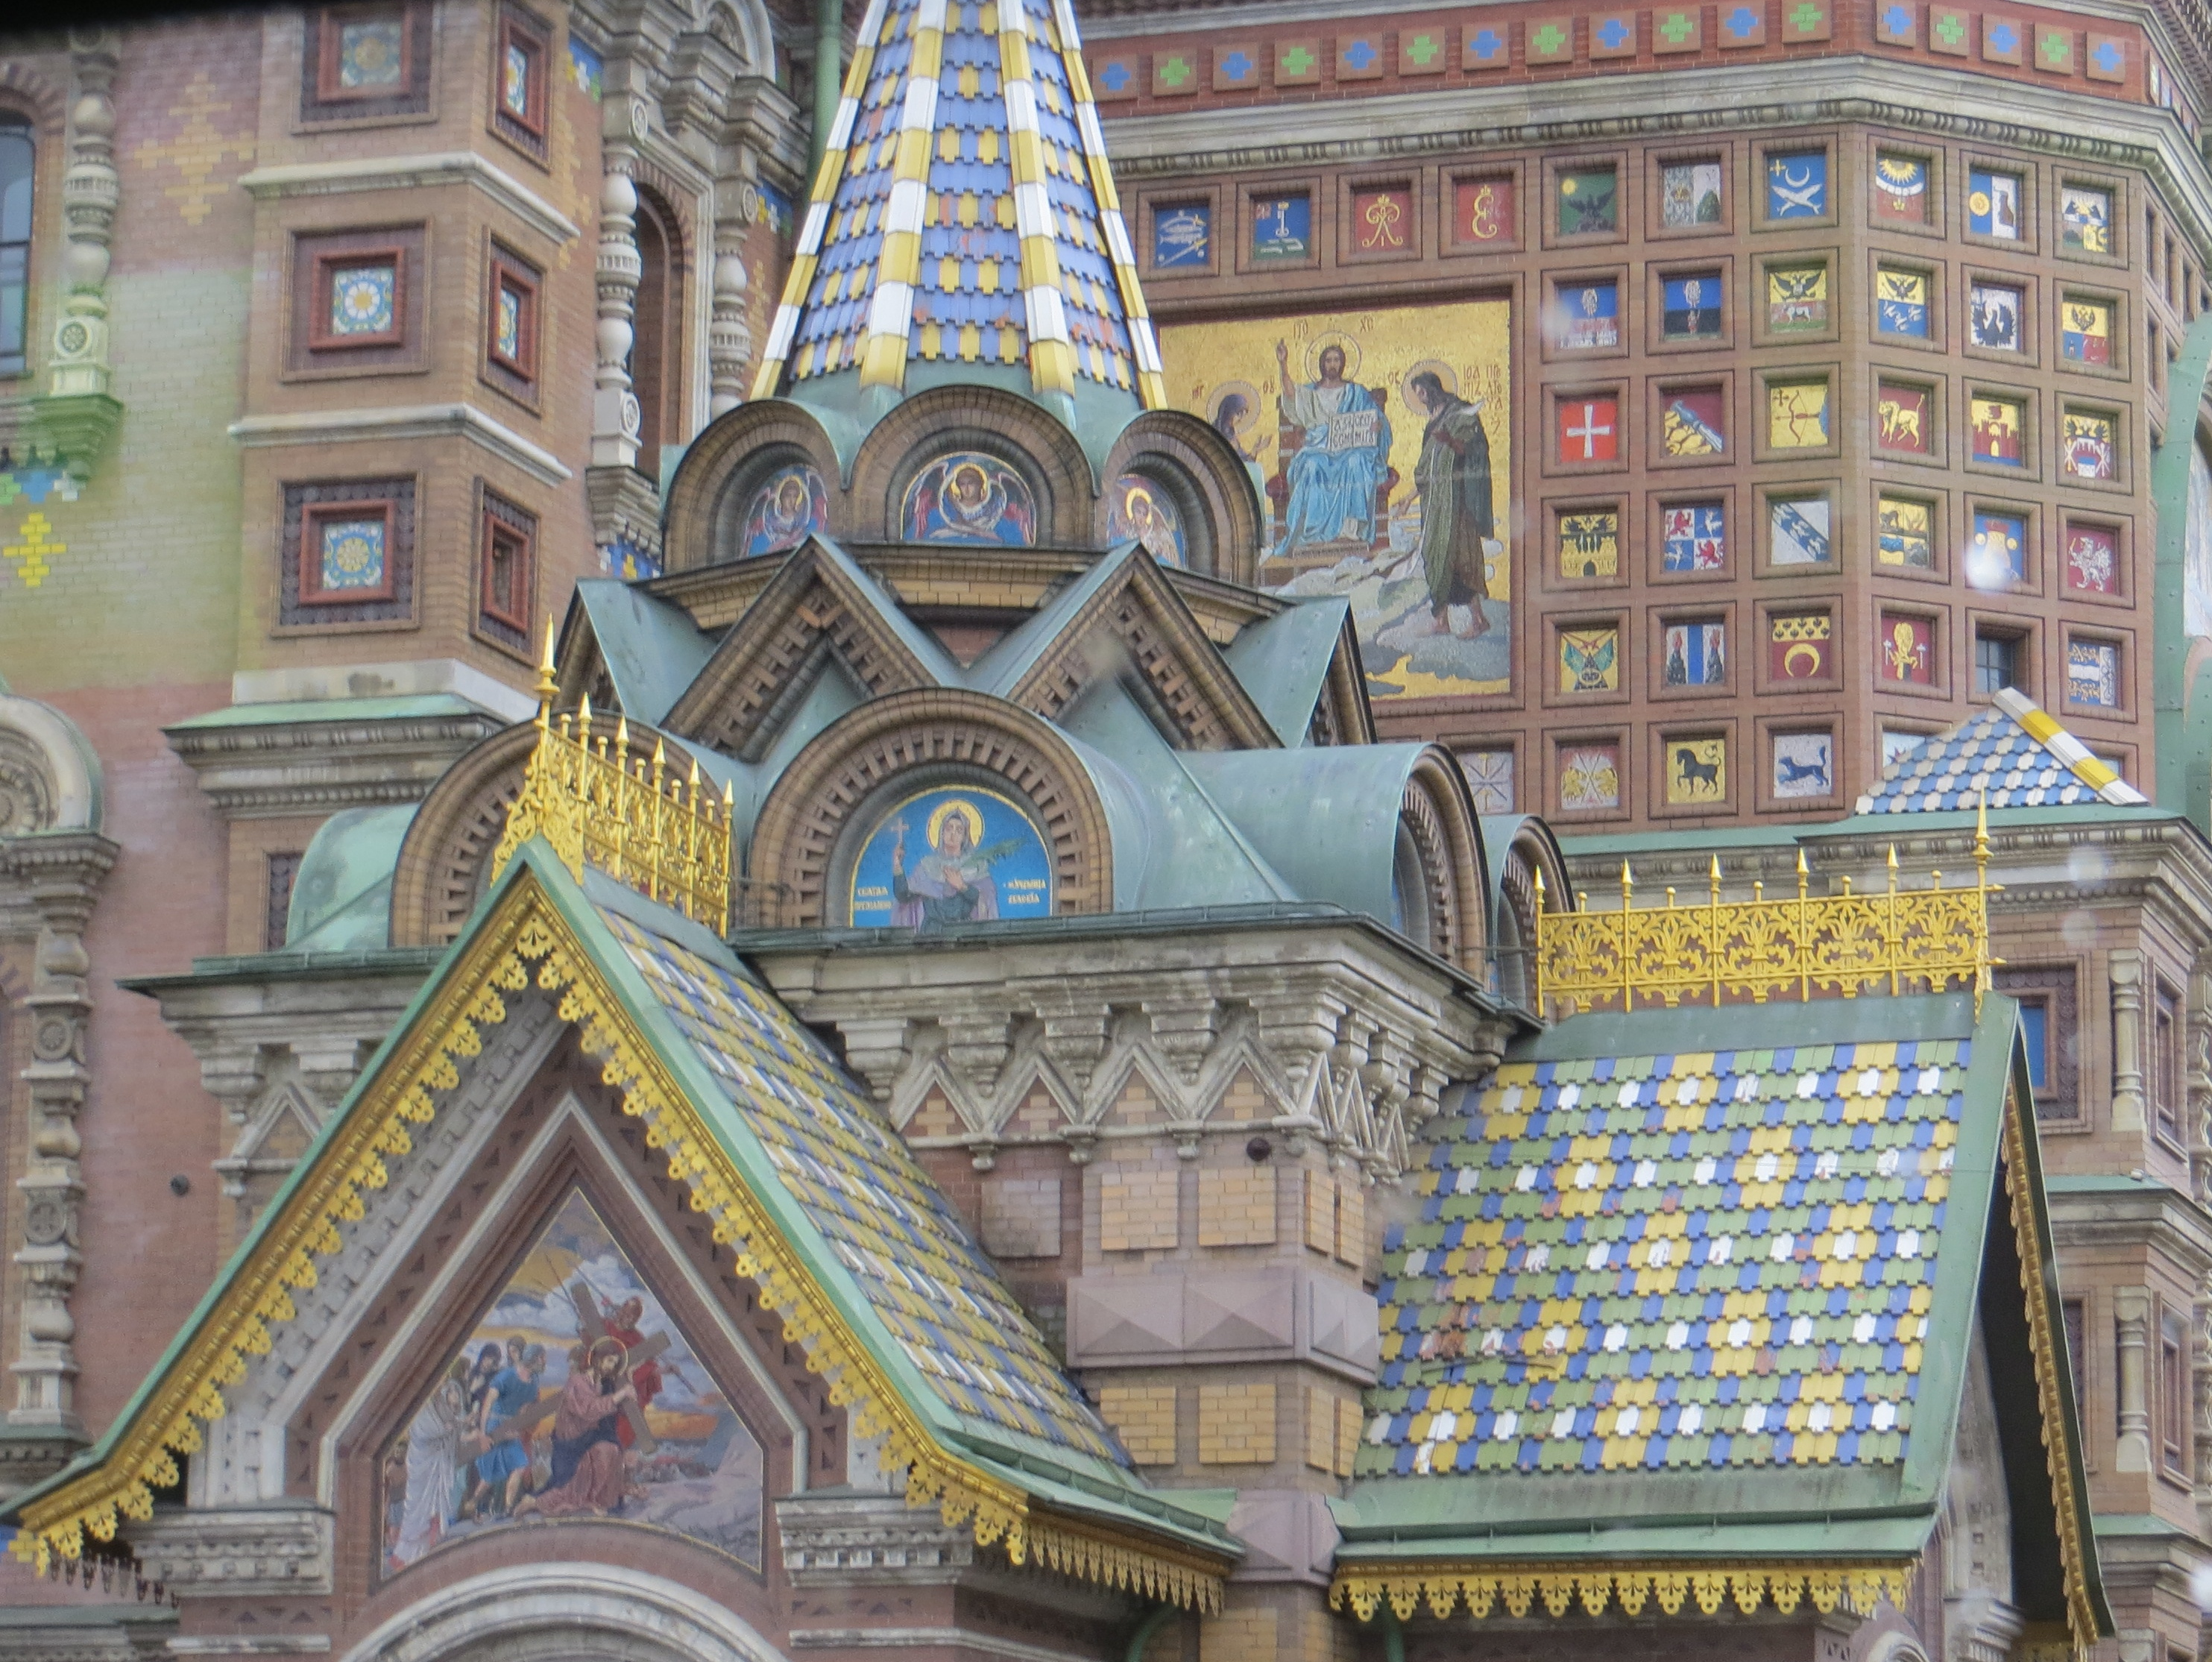 St Pete 7.11 spilled blood Russia